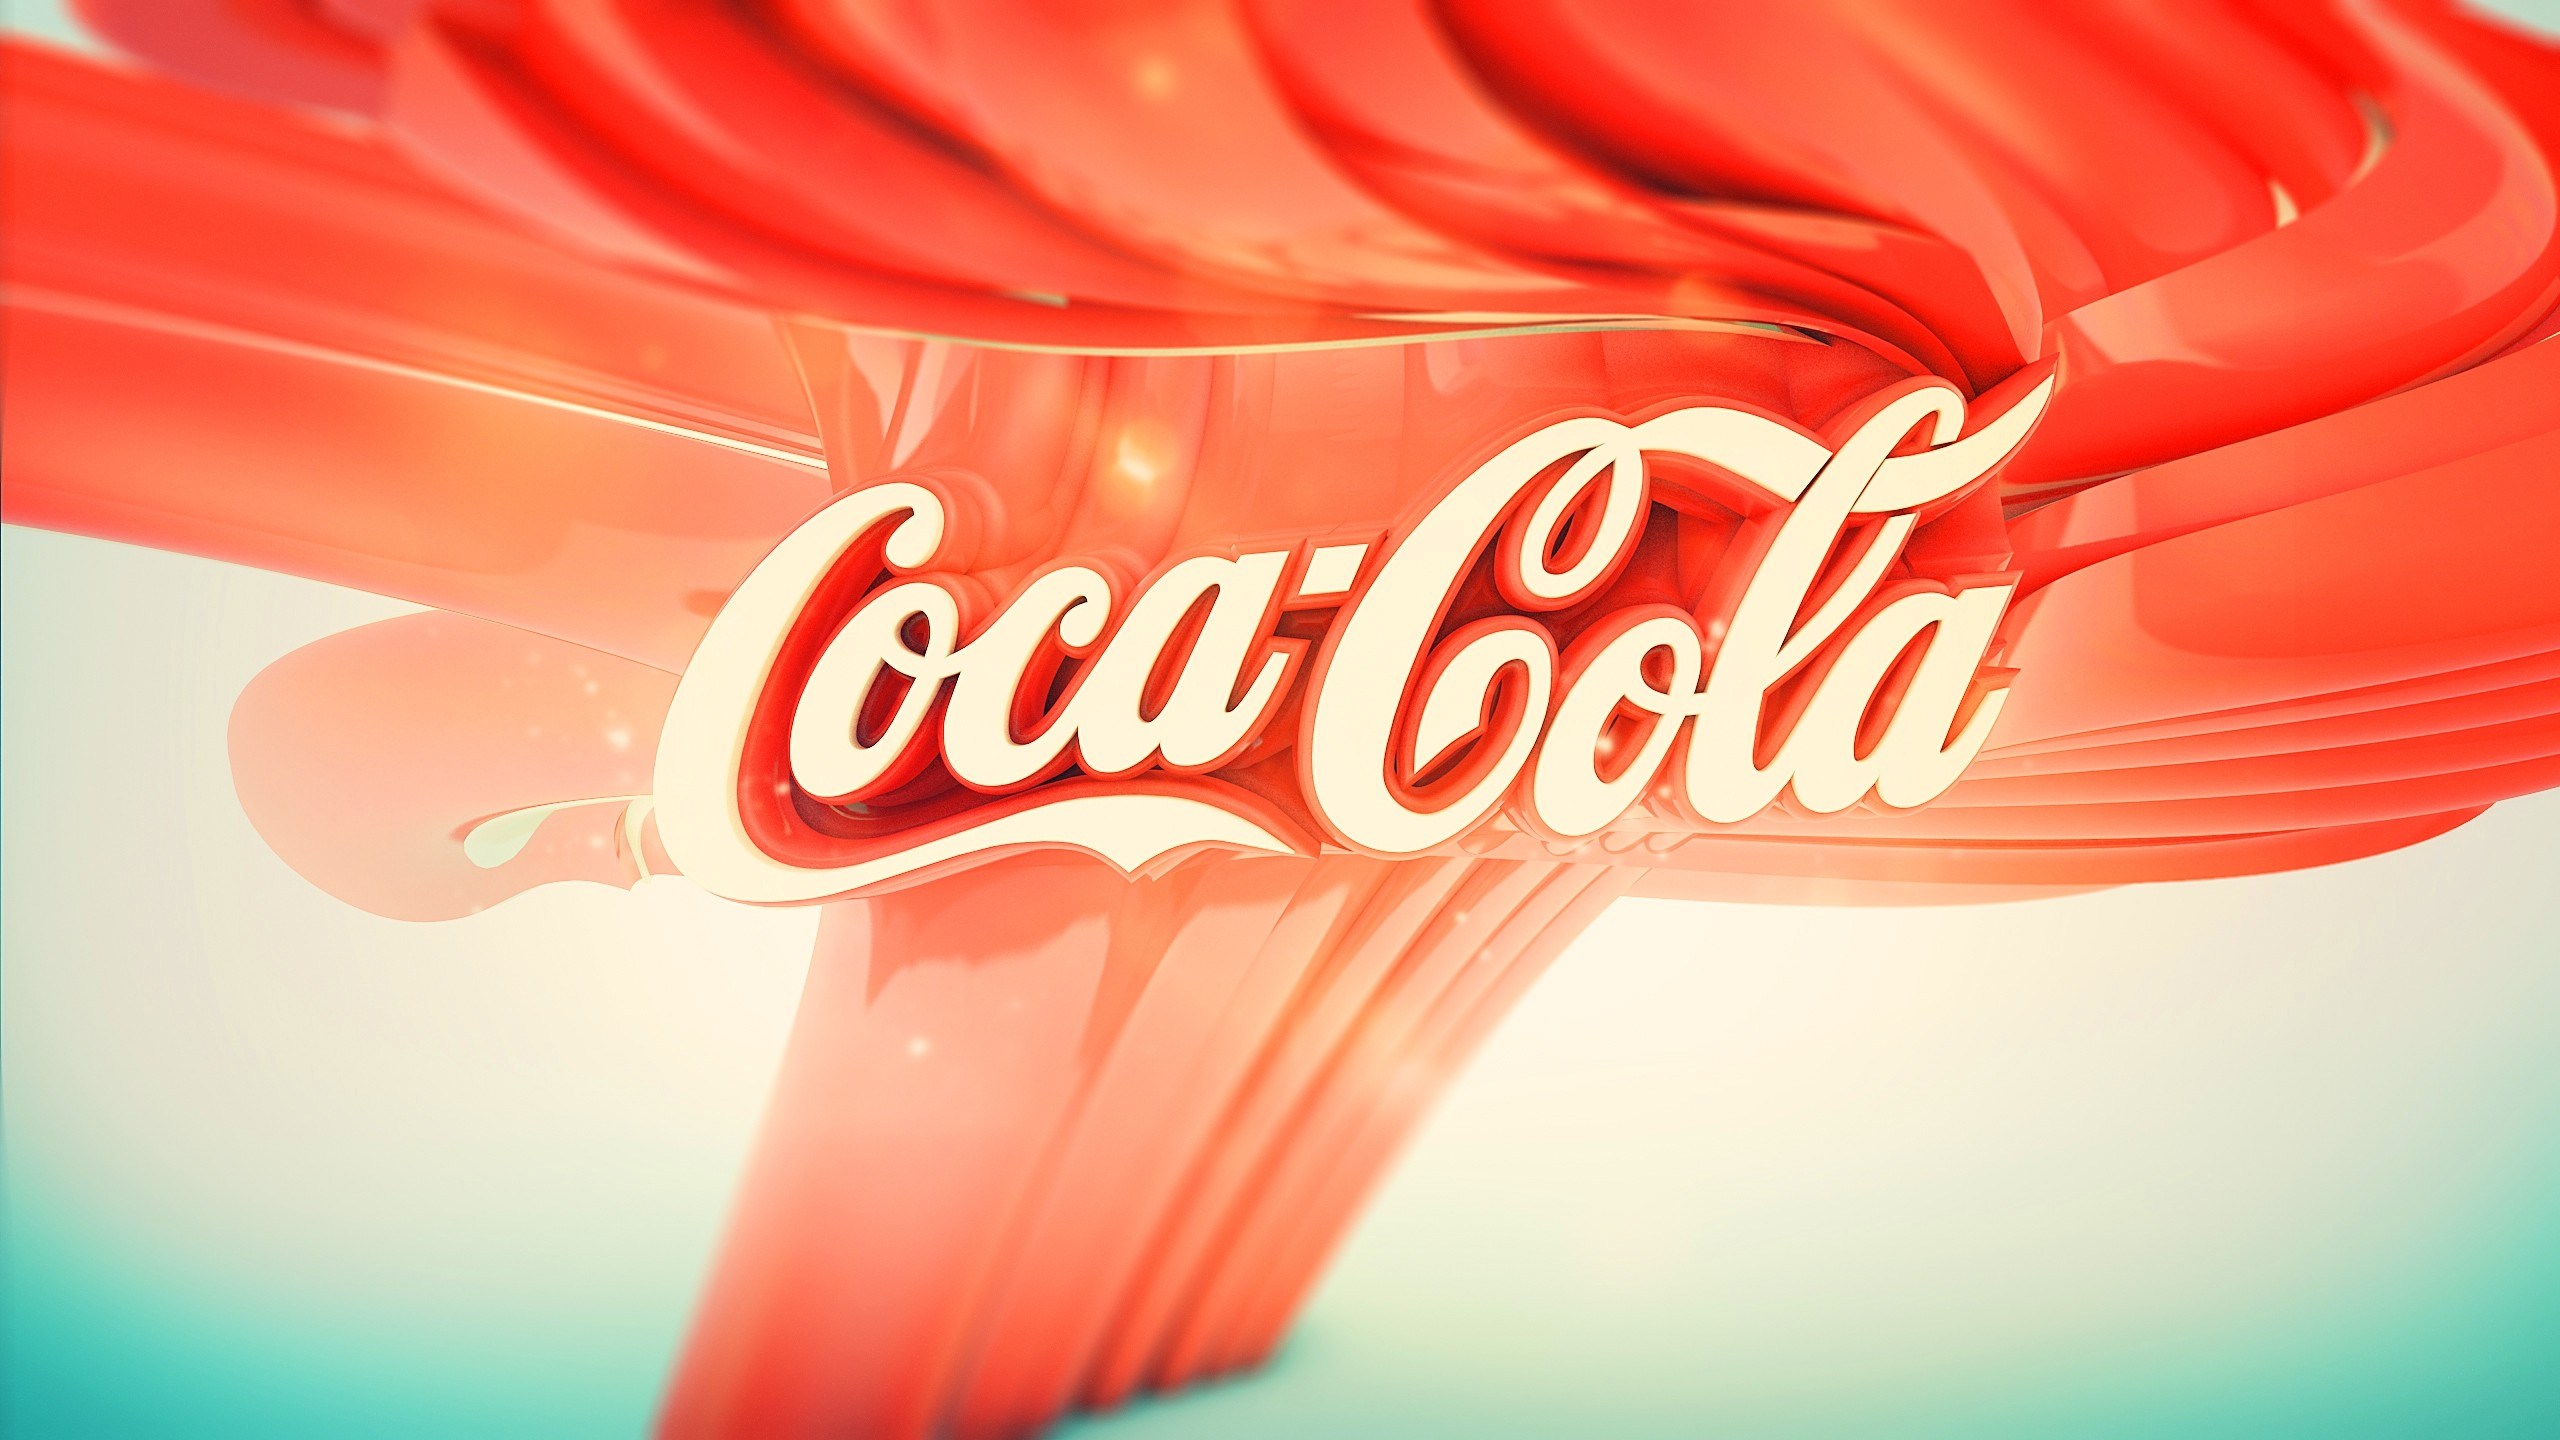 Coca cola wallpapers 74 images - Vintage coke wallpaper ...